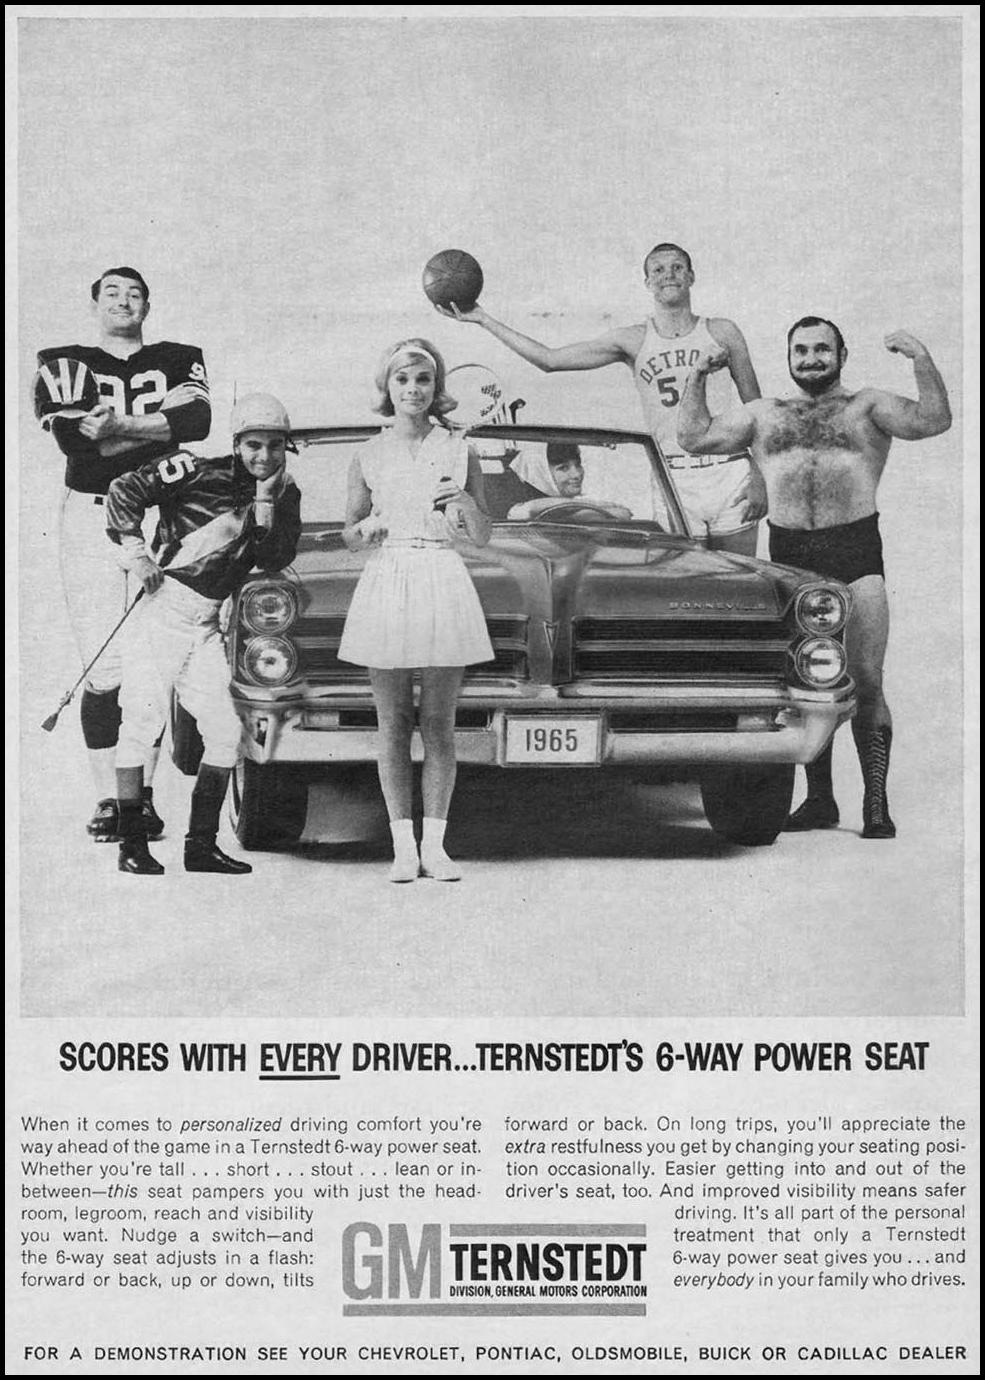 TERNSTEDT 6-WAY POWER SEAT NEWSWEEK 10/12/1964